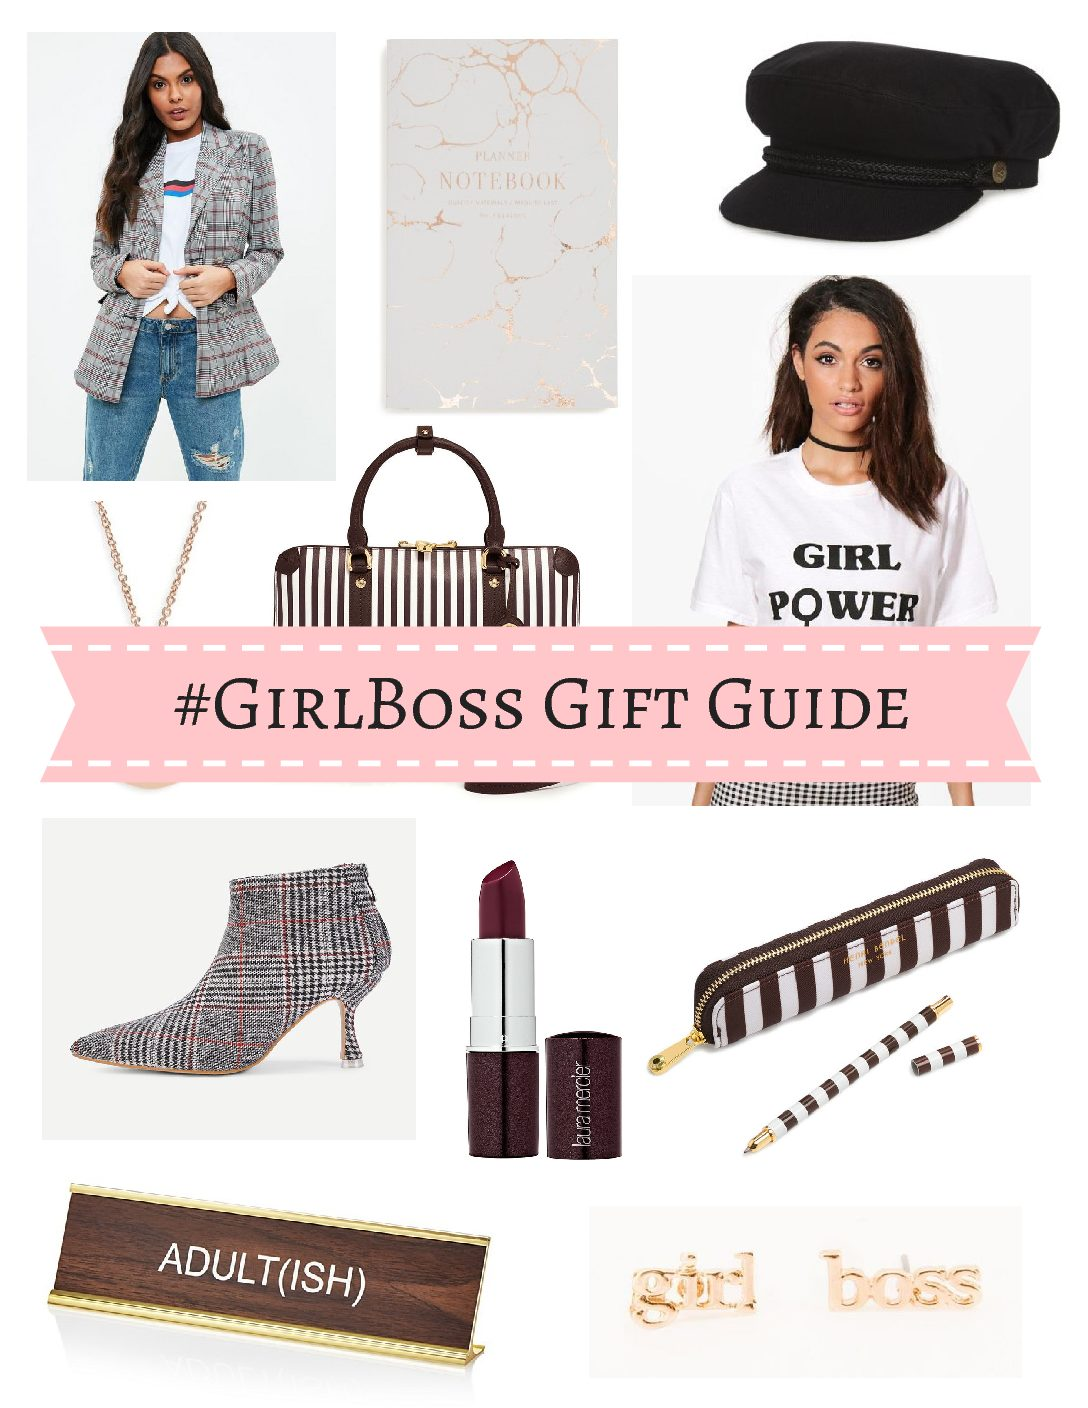 GirlBoss Gift Guide: Holiday Gifts For the Working Fashionista